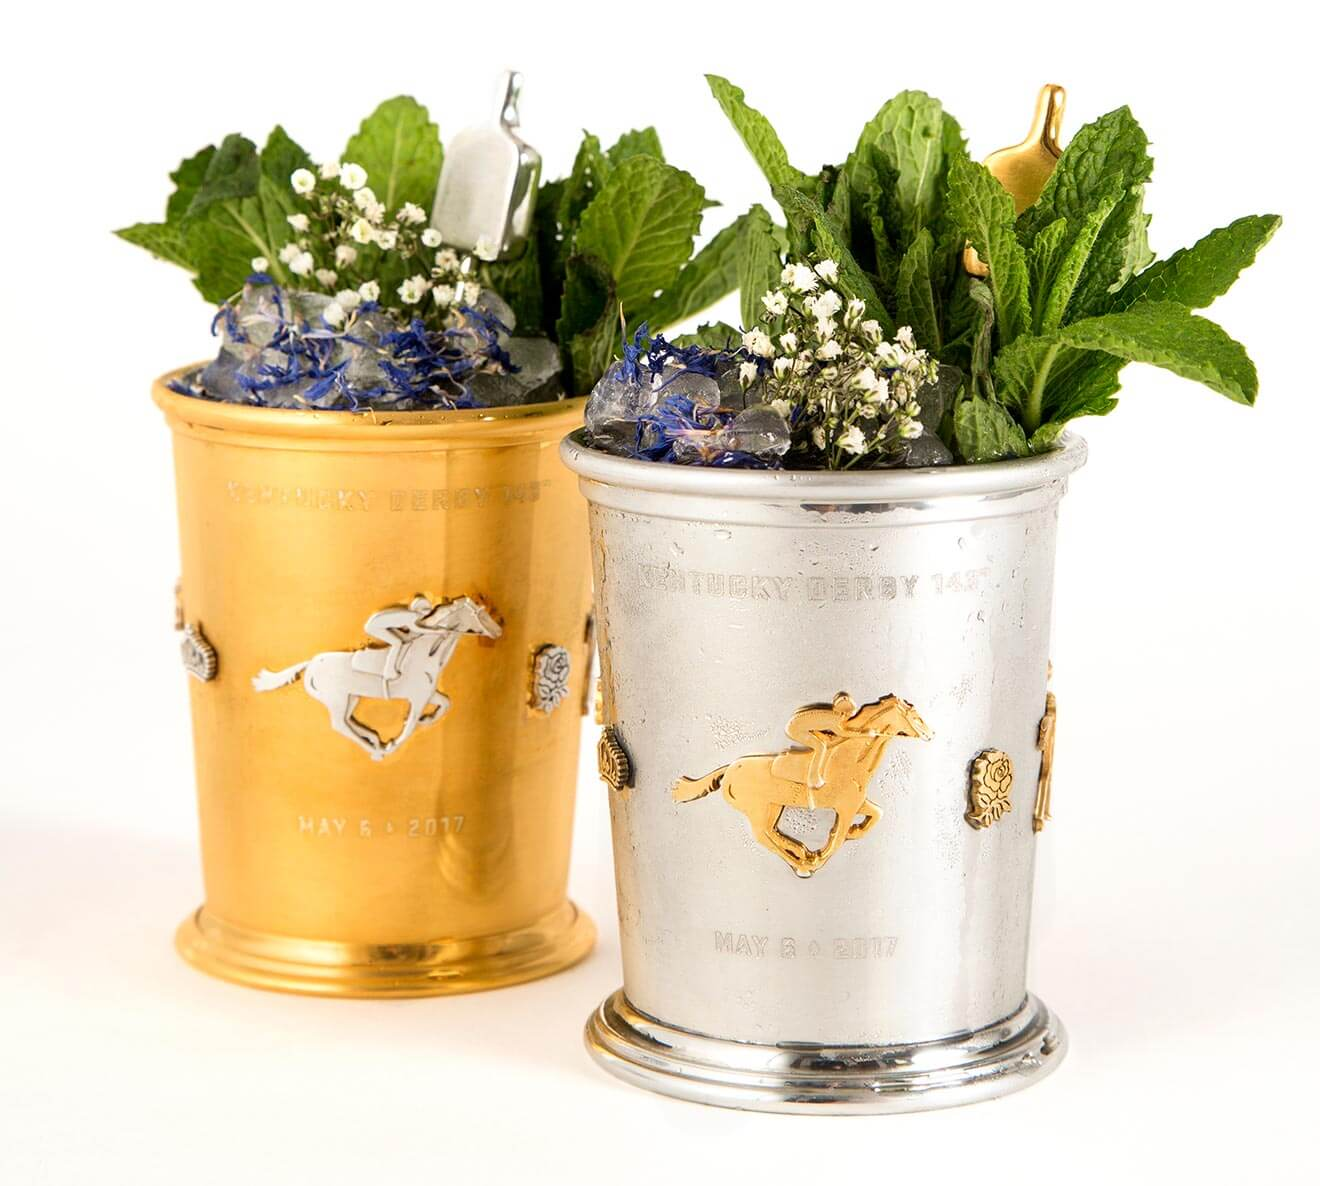 Woodford-Reserve-Mint-Julep-Cup